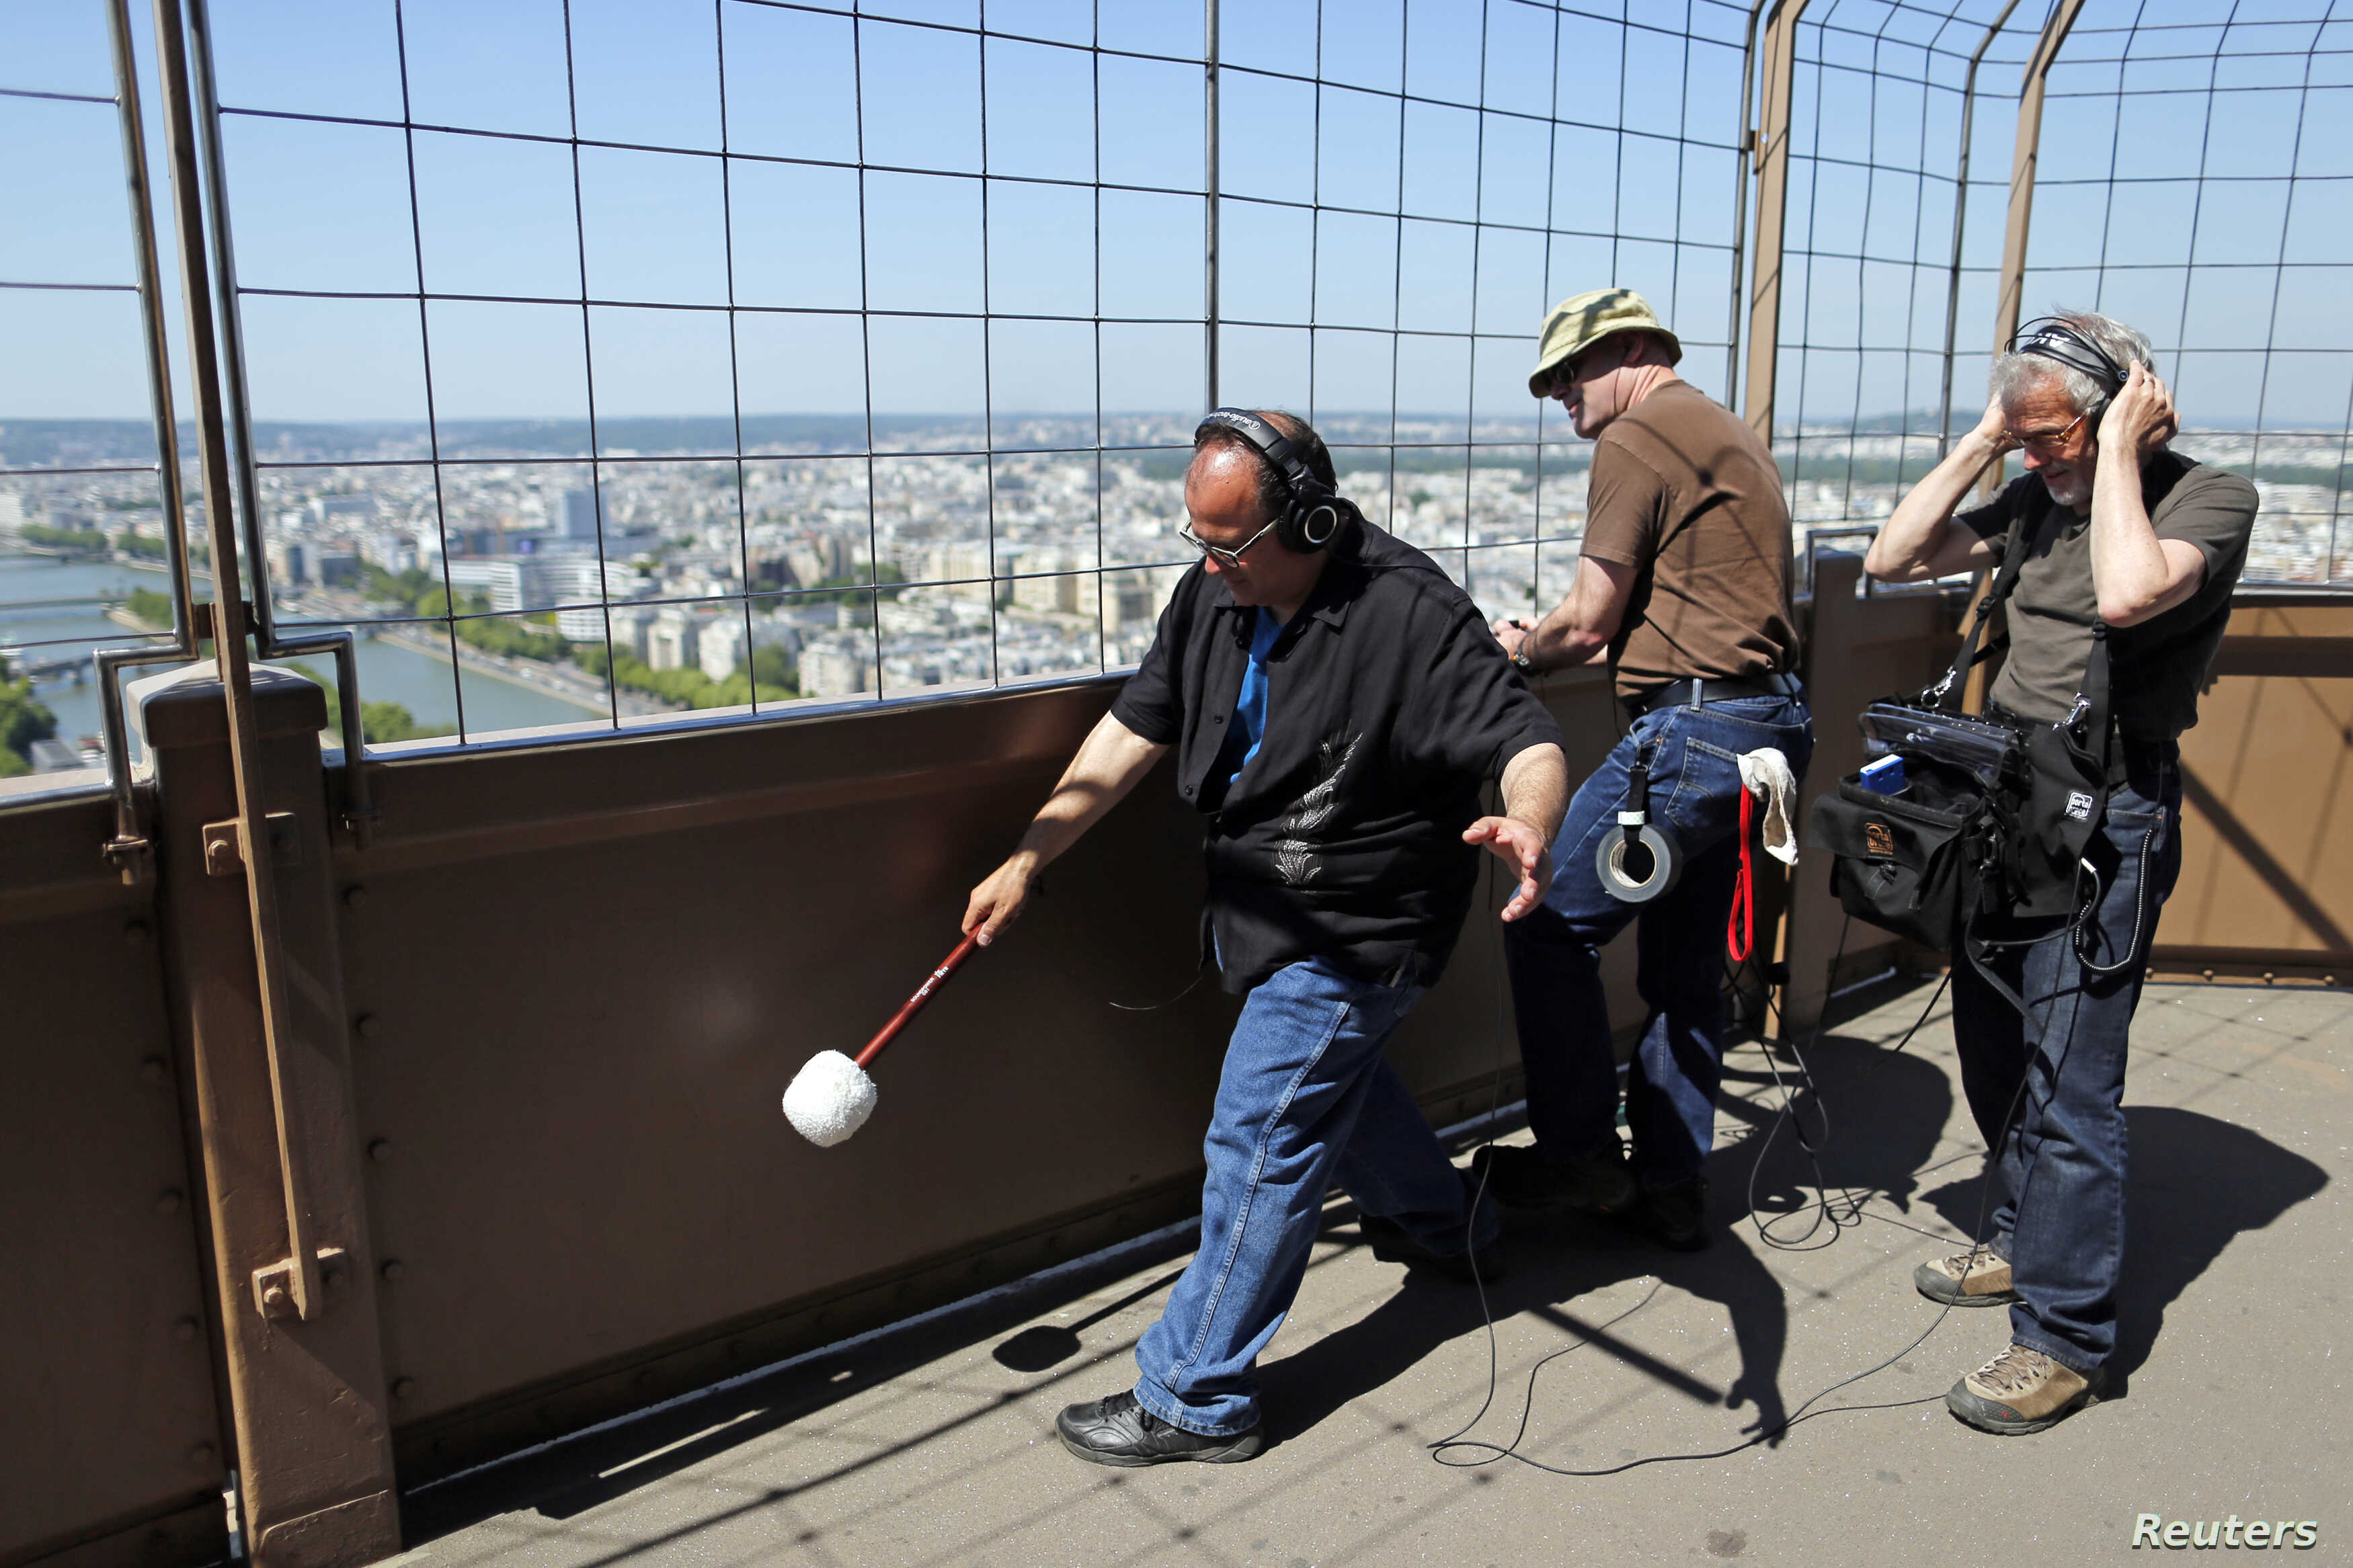 U.S. composer Joseph Bertolozzi (L) makes sounds by striking the surface of the Eiffel Tower for a musical project called 'Tower music' in Paris June 7, 2013. Bertolozzi and his team collect sounds with a microphone to use them as samples for their c...